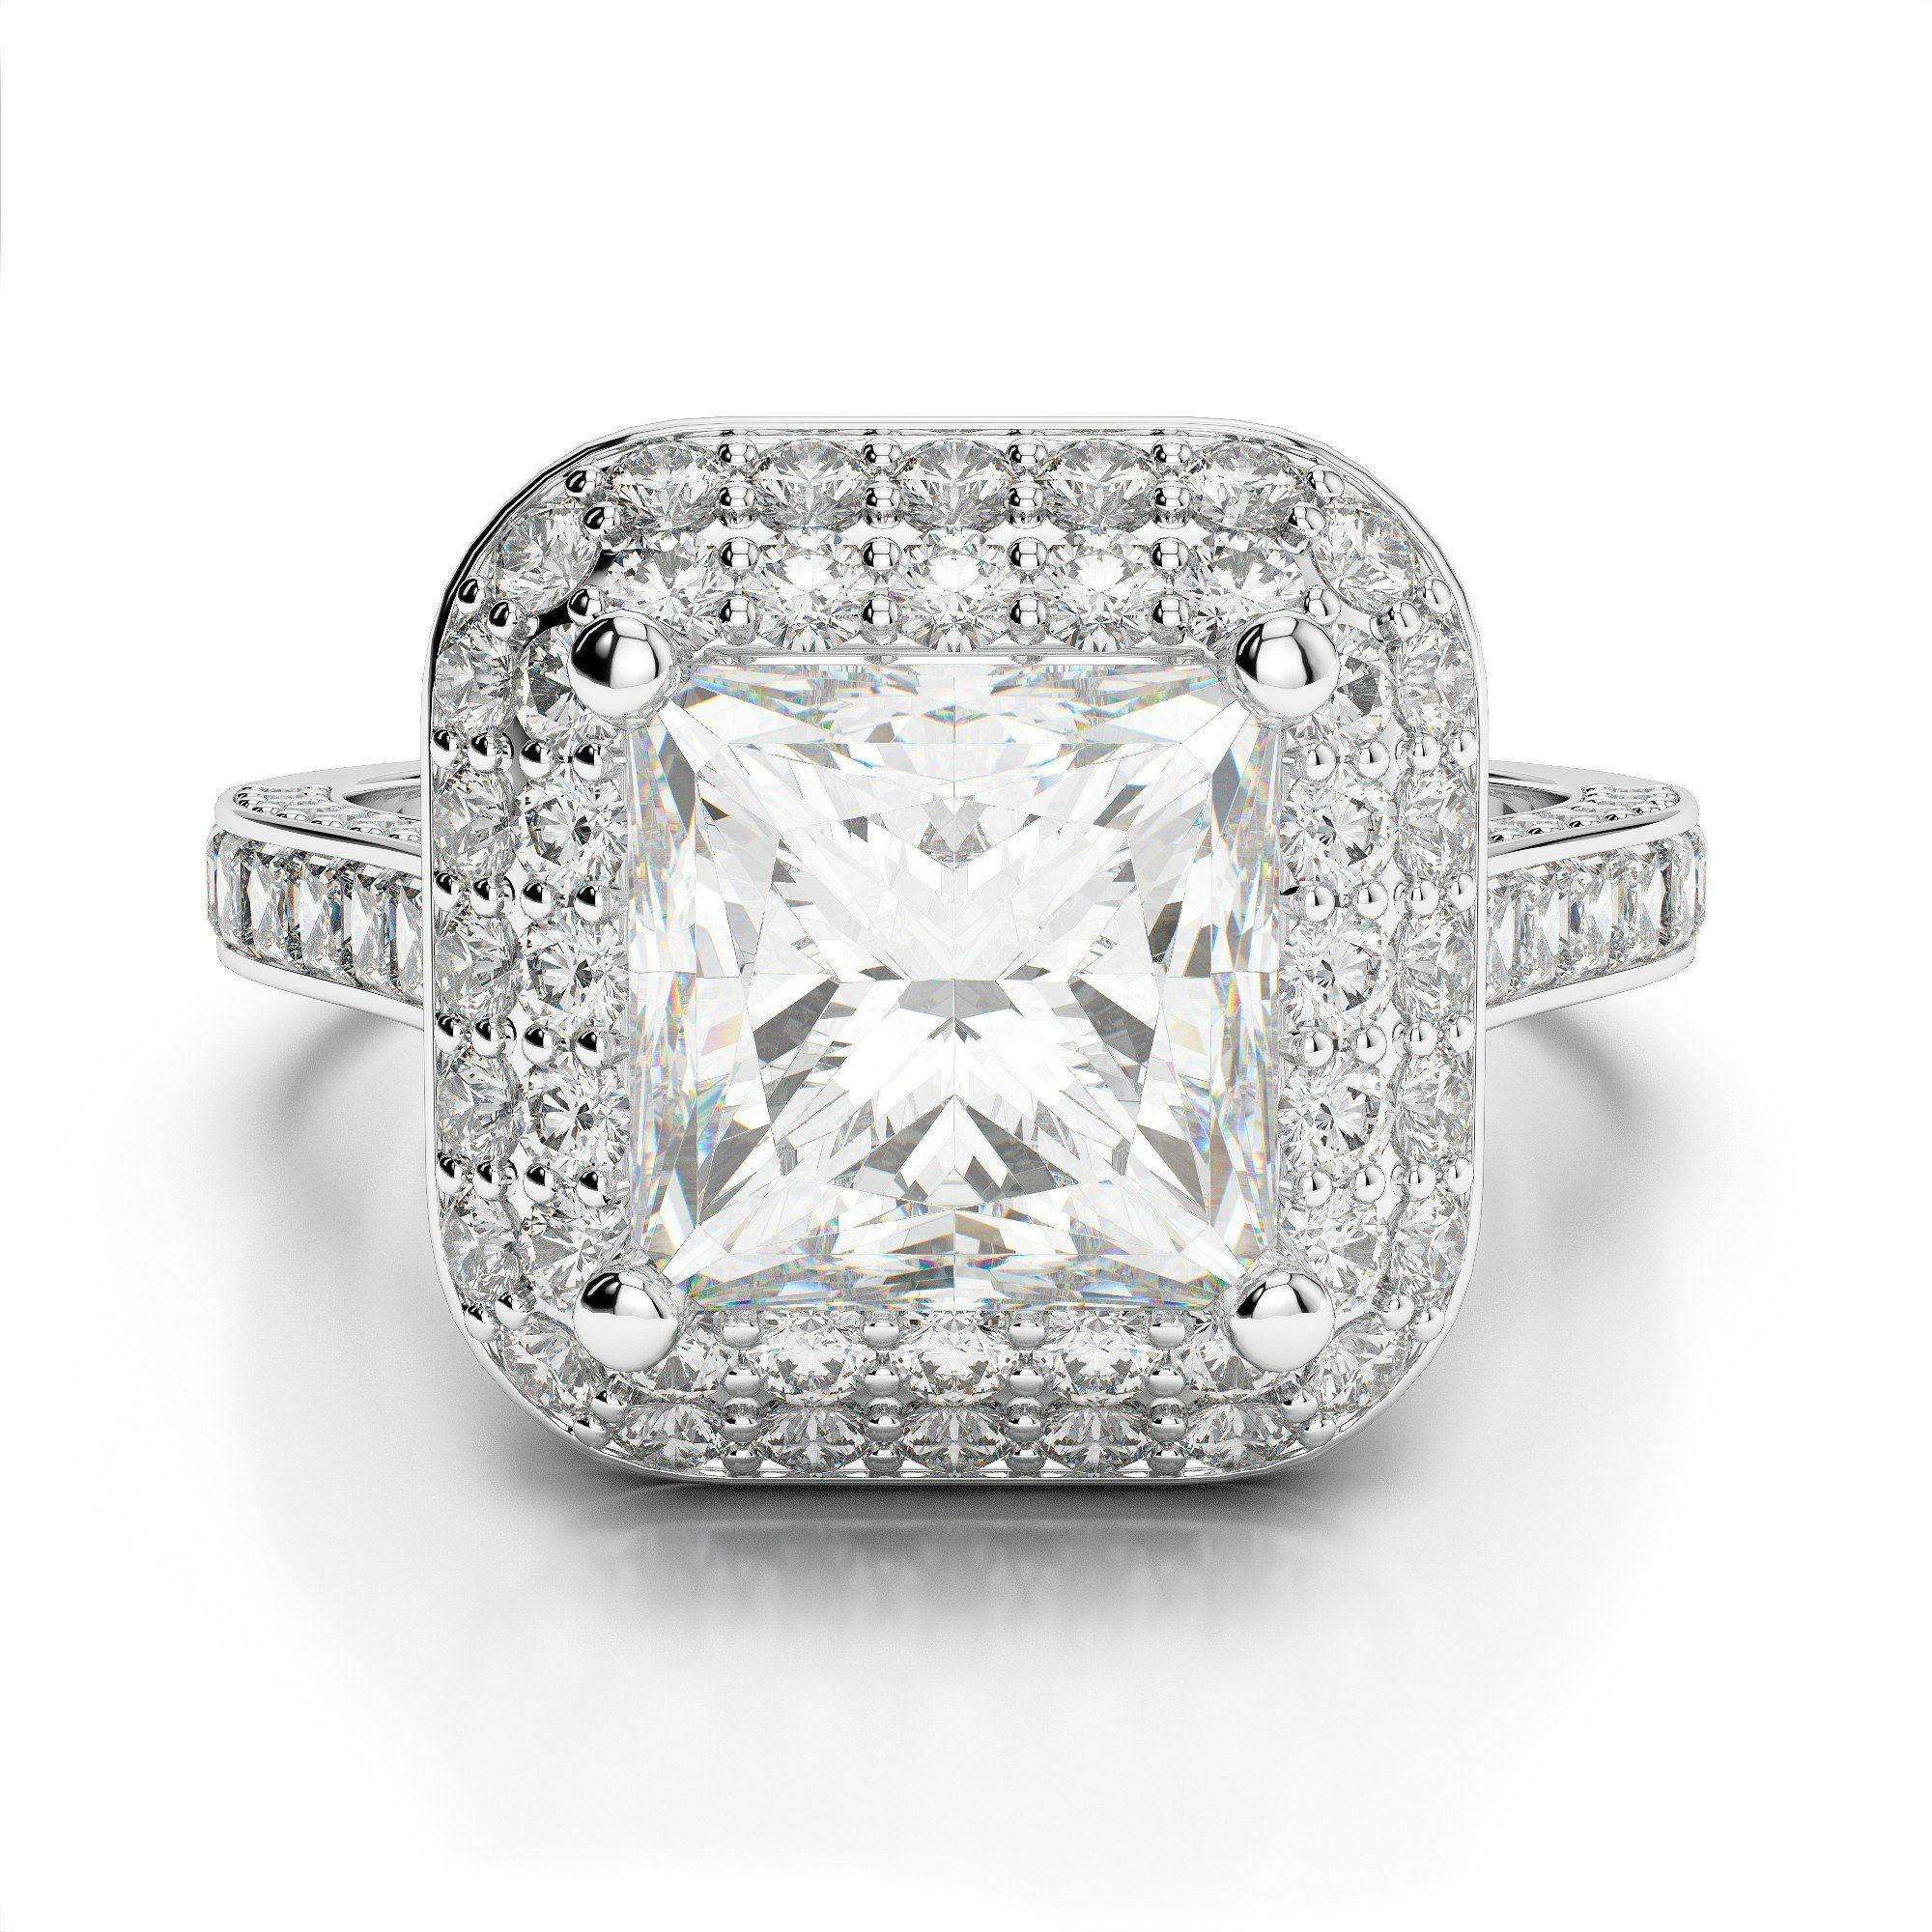 2.14 ctw Princess Diamond Double Halo Engagement Ring